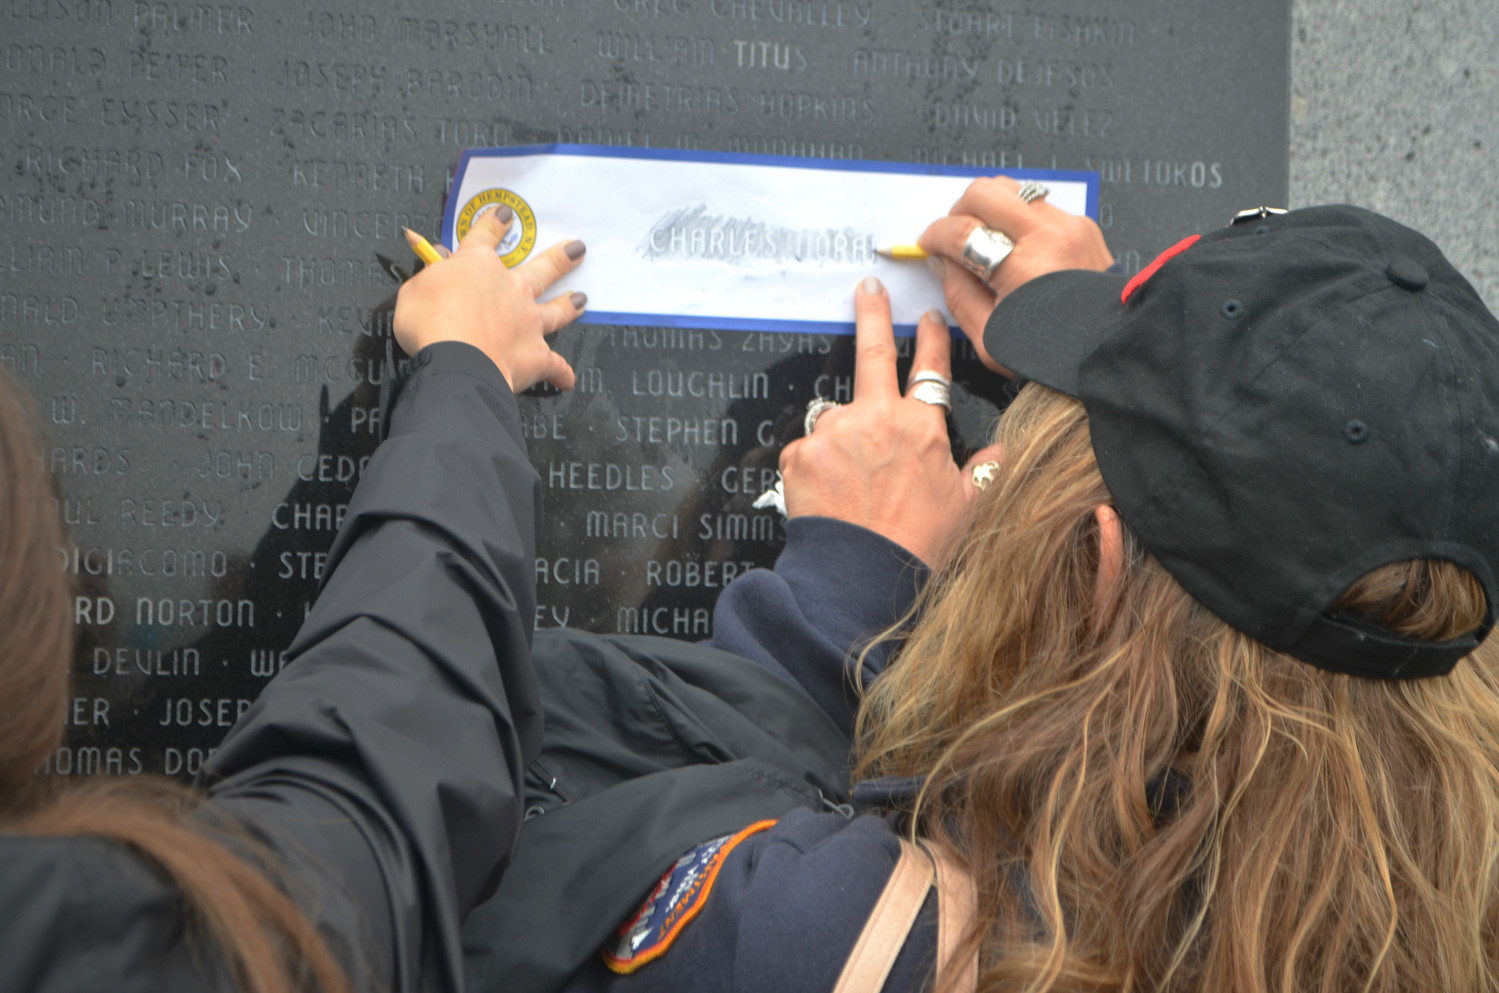 Bethpage resident Toni Ioveno made an impression of the name of her late friend, Charles Noran, etched on the Town of Hempstead's memorial wall in Point Lookout.